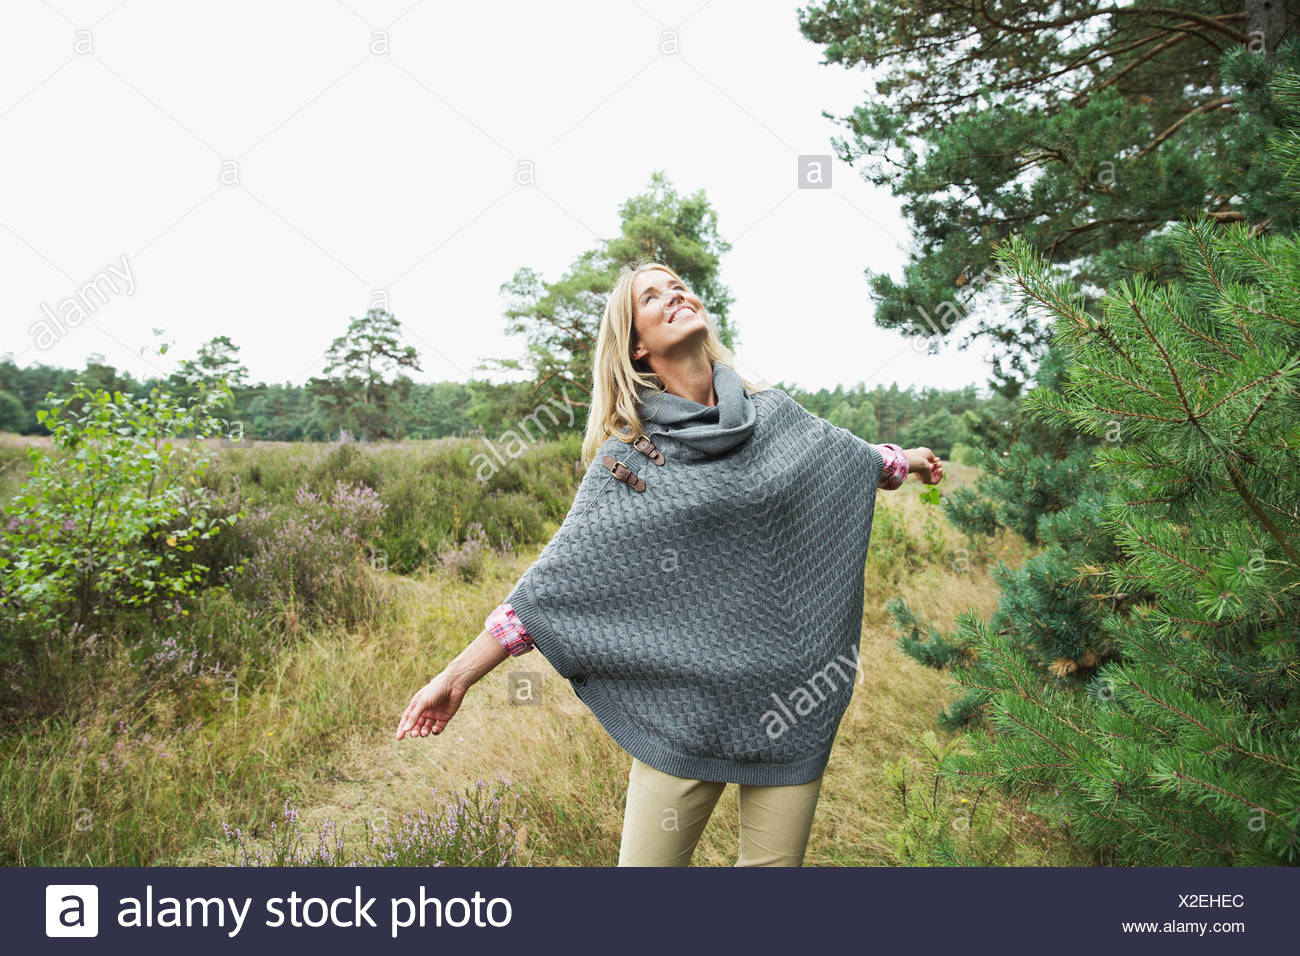 Mid adult woman wearing grey poncho looking up - Stock Image